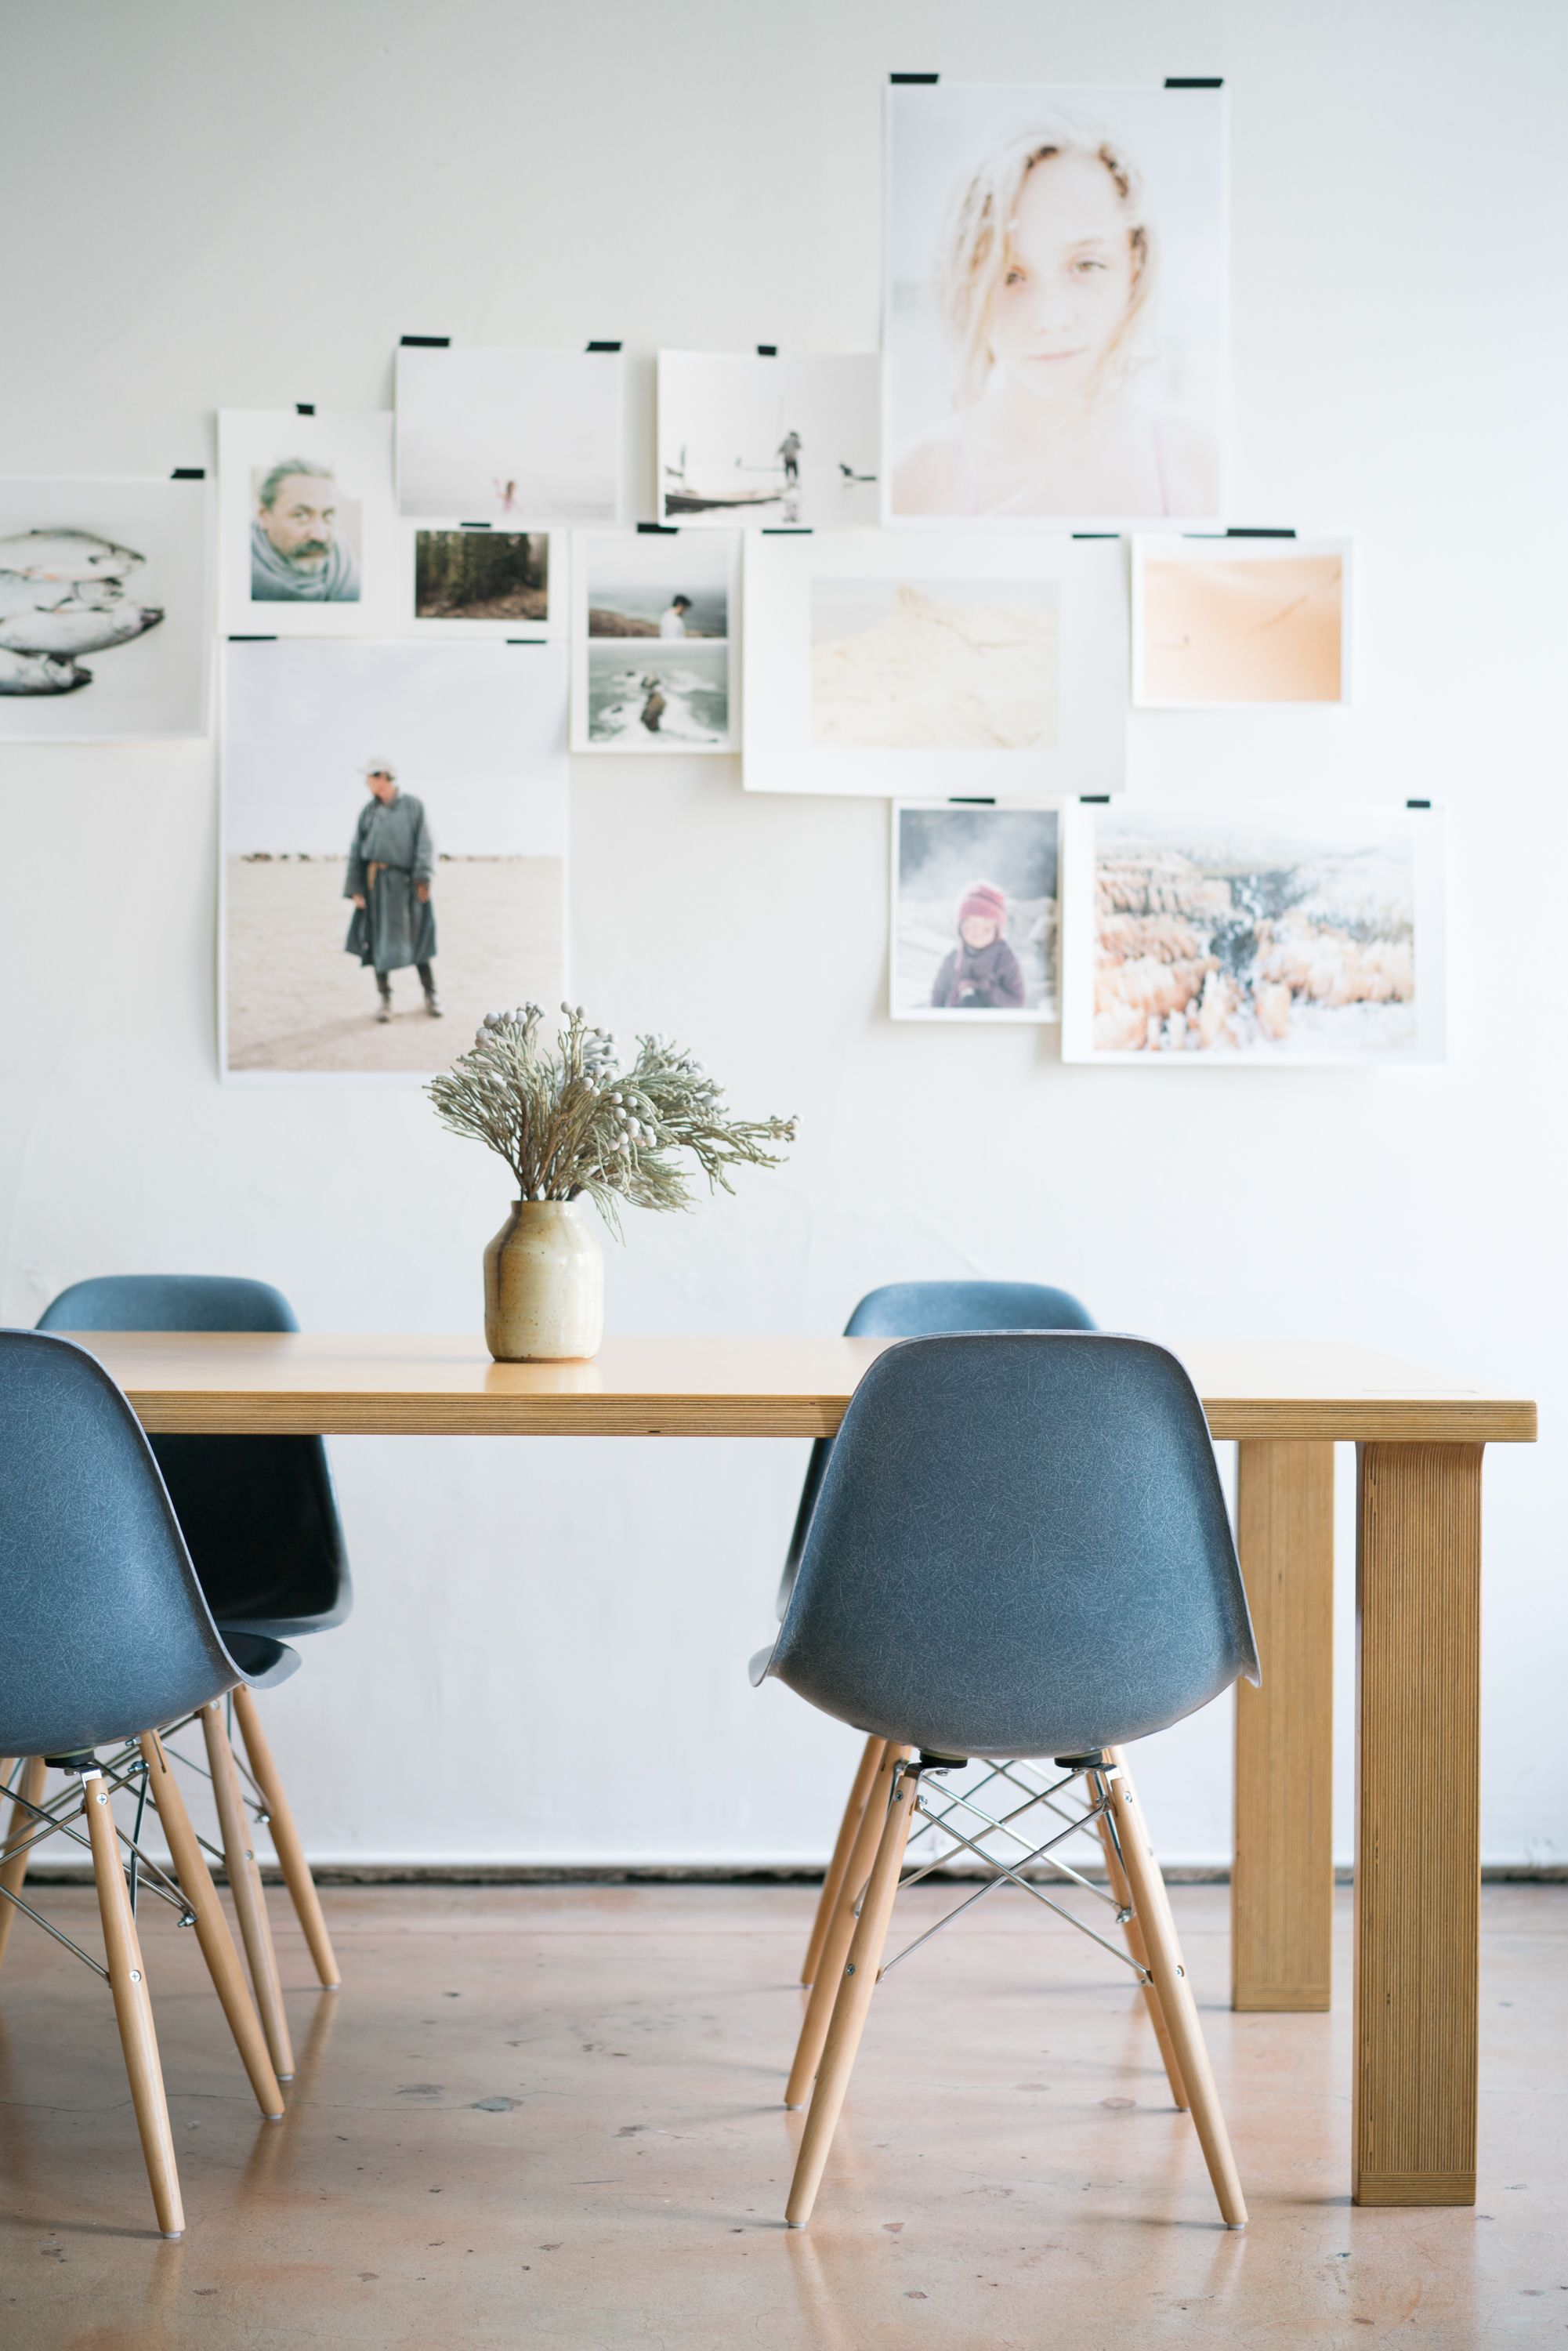 Modernica Case Study Fiberglass Shell Chairs In Nantucket And Tenon Table